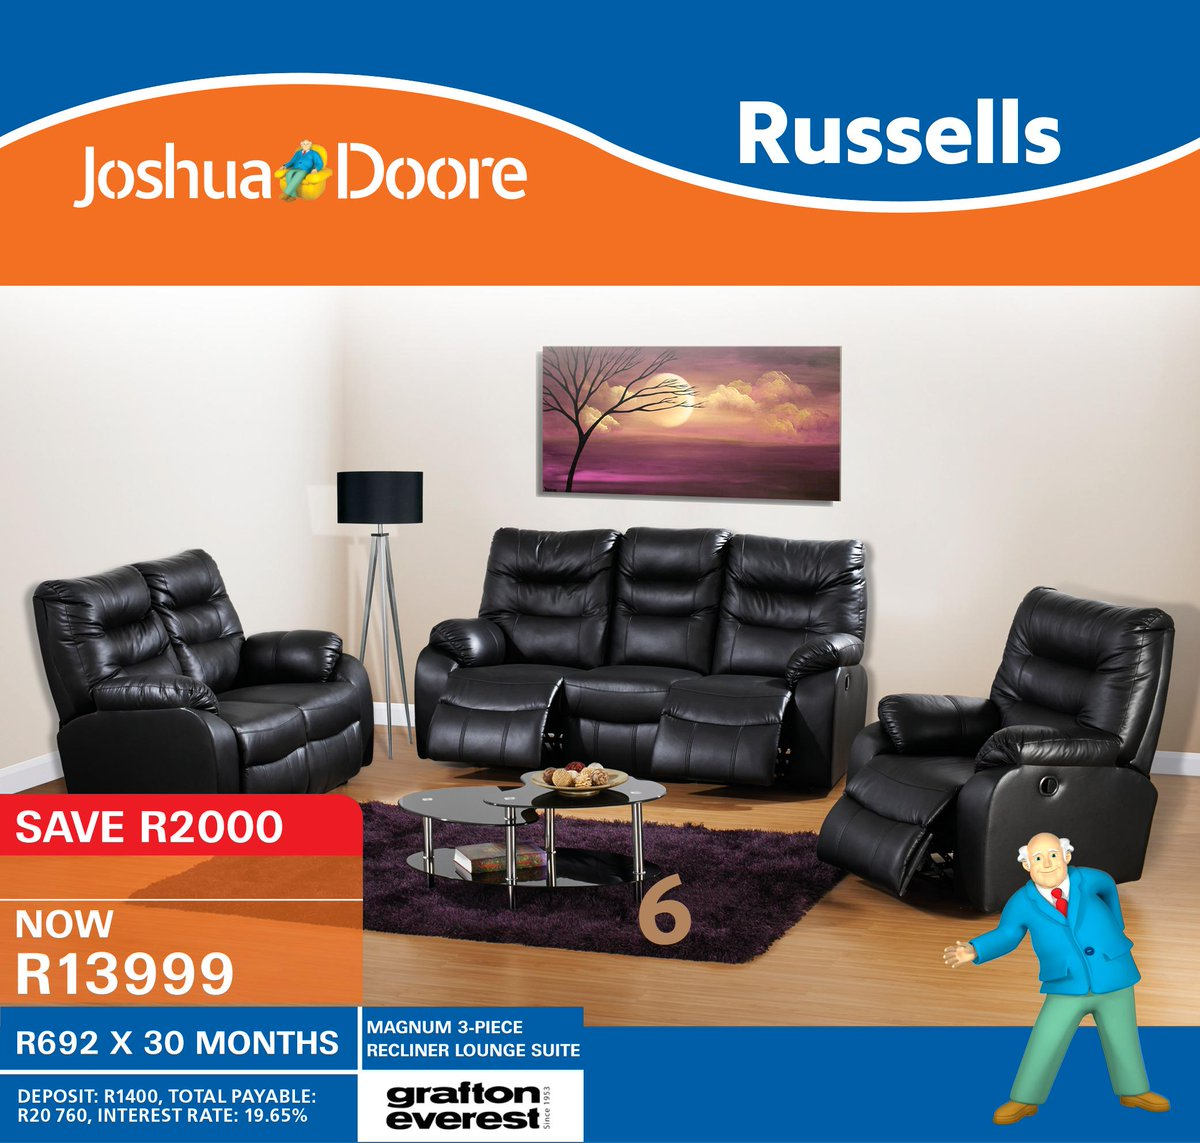 Joshua Doore on Twitter  SAVE R2000 when you purchase this beautiful MAGNUM 3-PIECE RECLINER LOUNGE SUITE! Limited Stock Available* //t.co/eXlELSDHWC   sc 1 st  Twitter & Joshua Doore on Twitter: